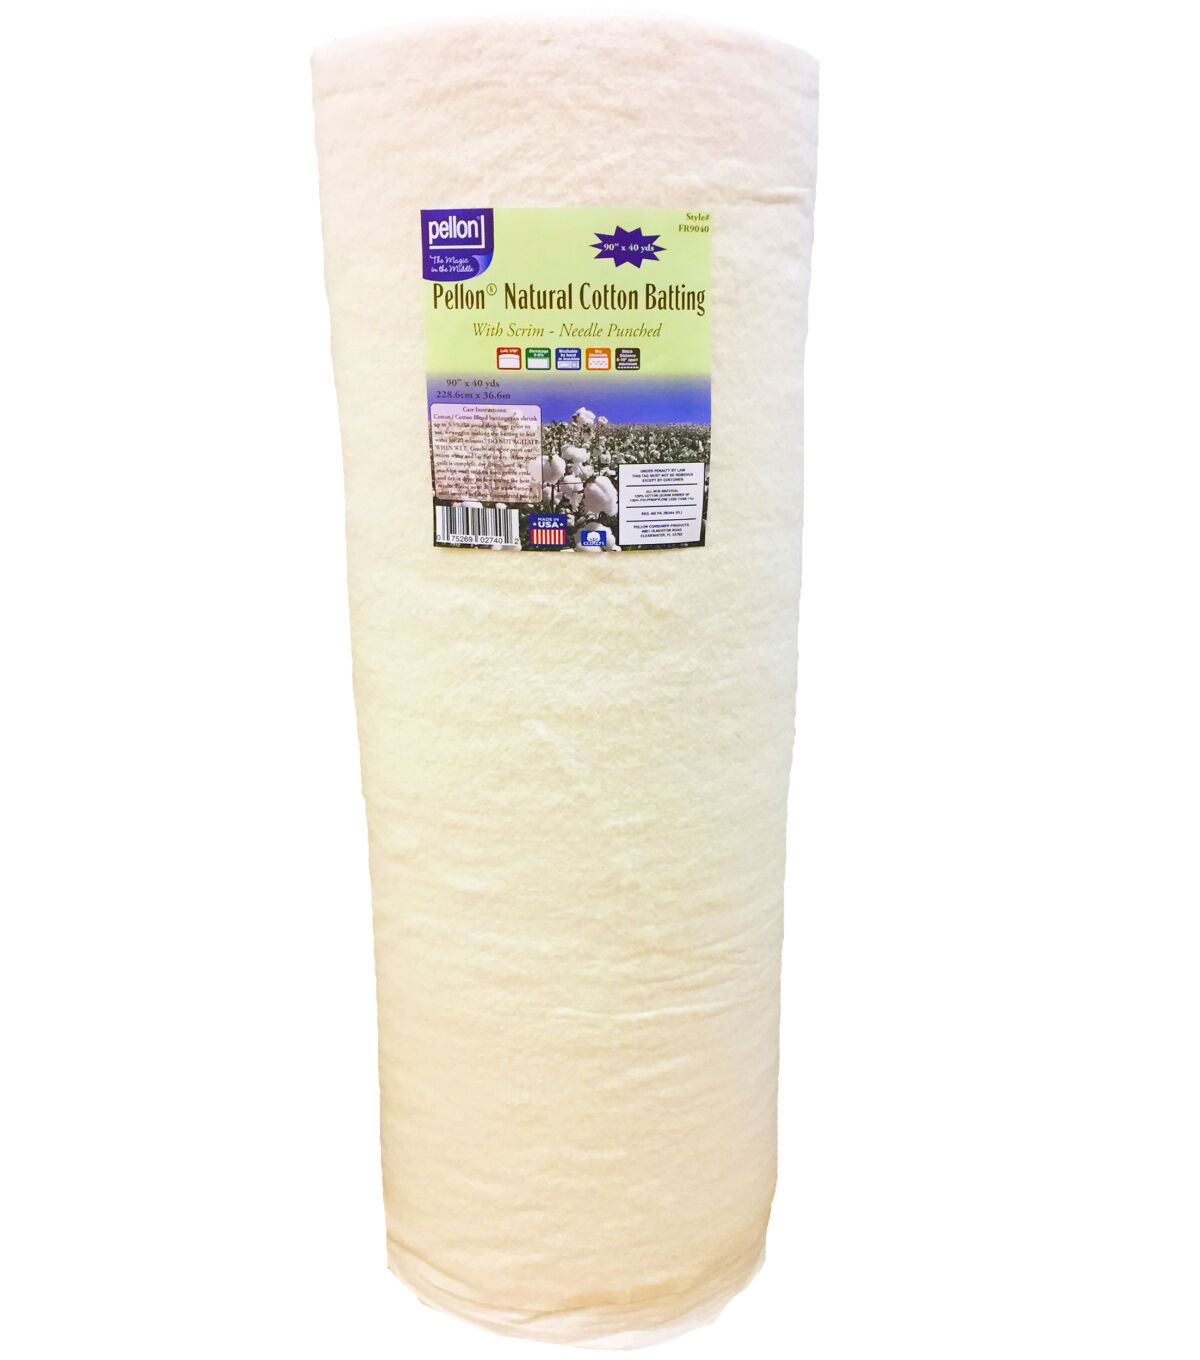 Purely Natural All Season Quilt Batting by The Roll King Size Applique Low Loft Fabric for Quilting Angel Crafts and Sewing Cotton Batting for Quilts Upholstery 124 by 120 inches Pillows